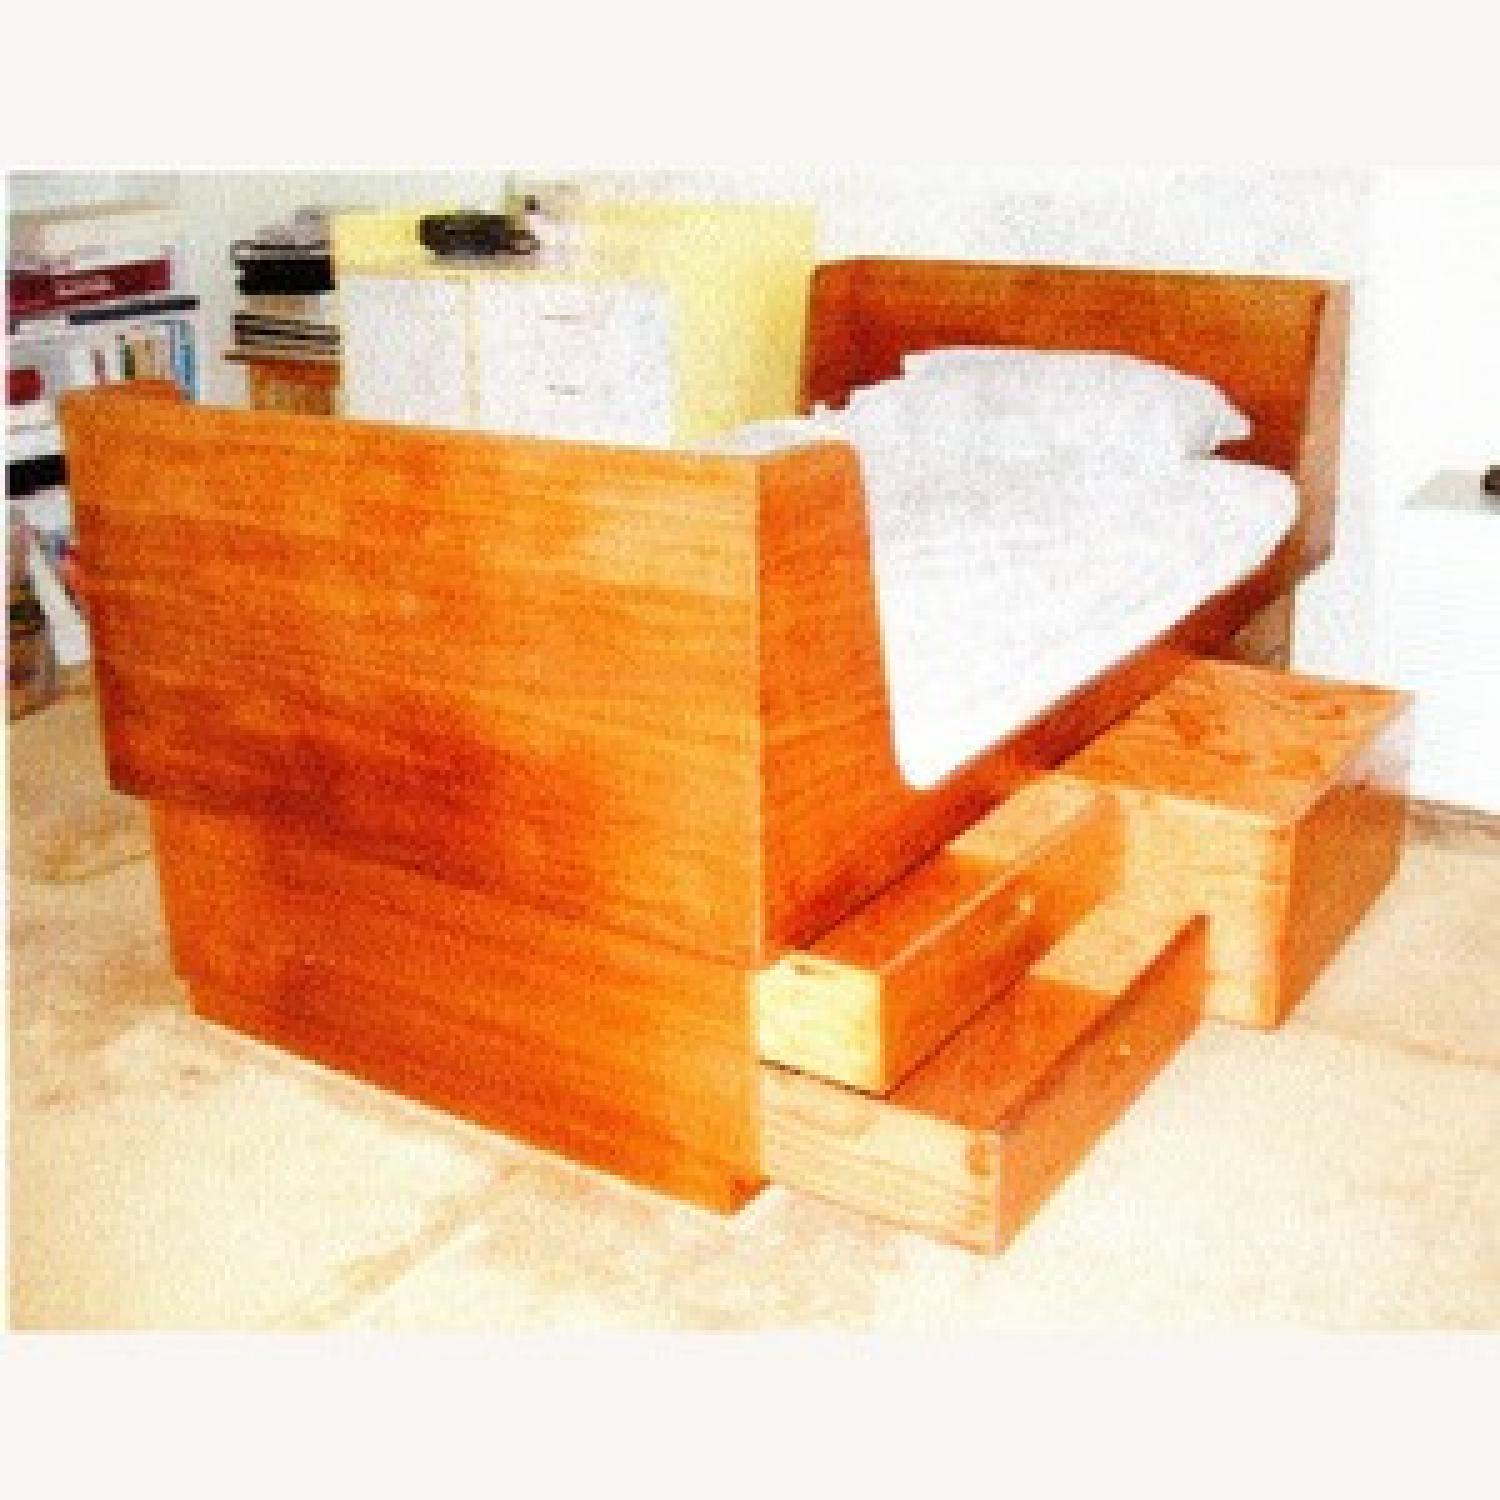 Bed Twin with 5 Storage Drawers - image-3